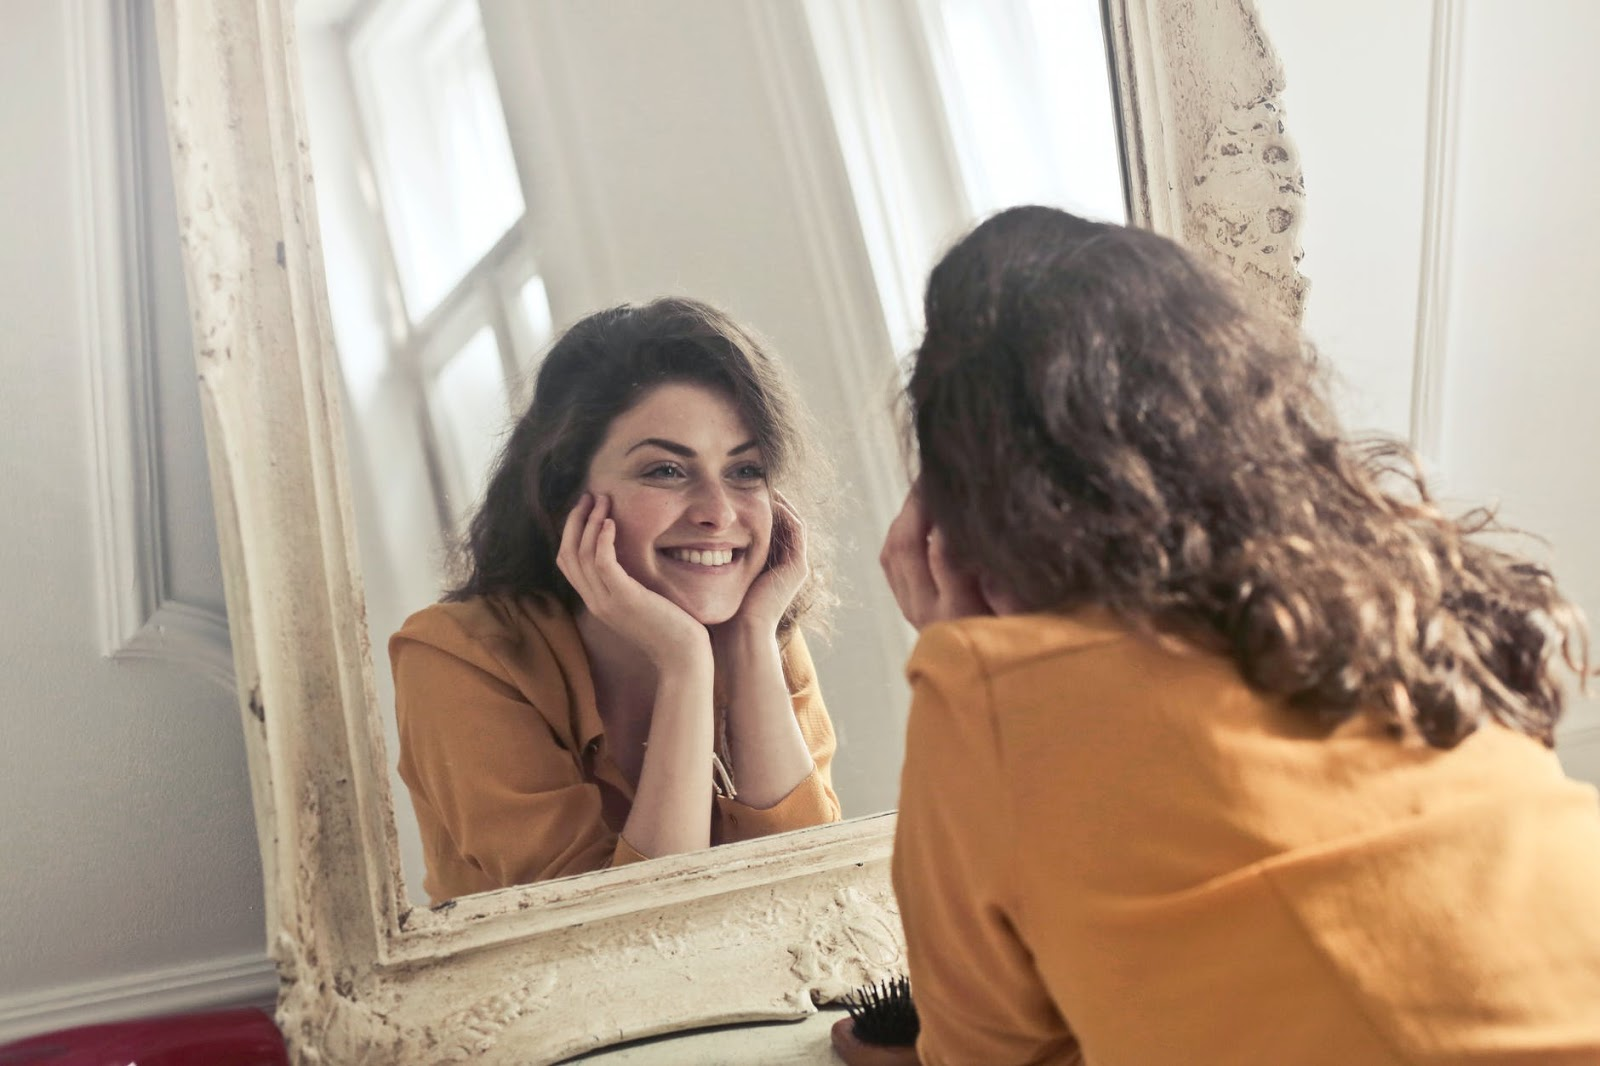 A woman looks into a mirror